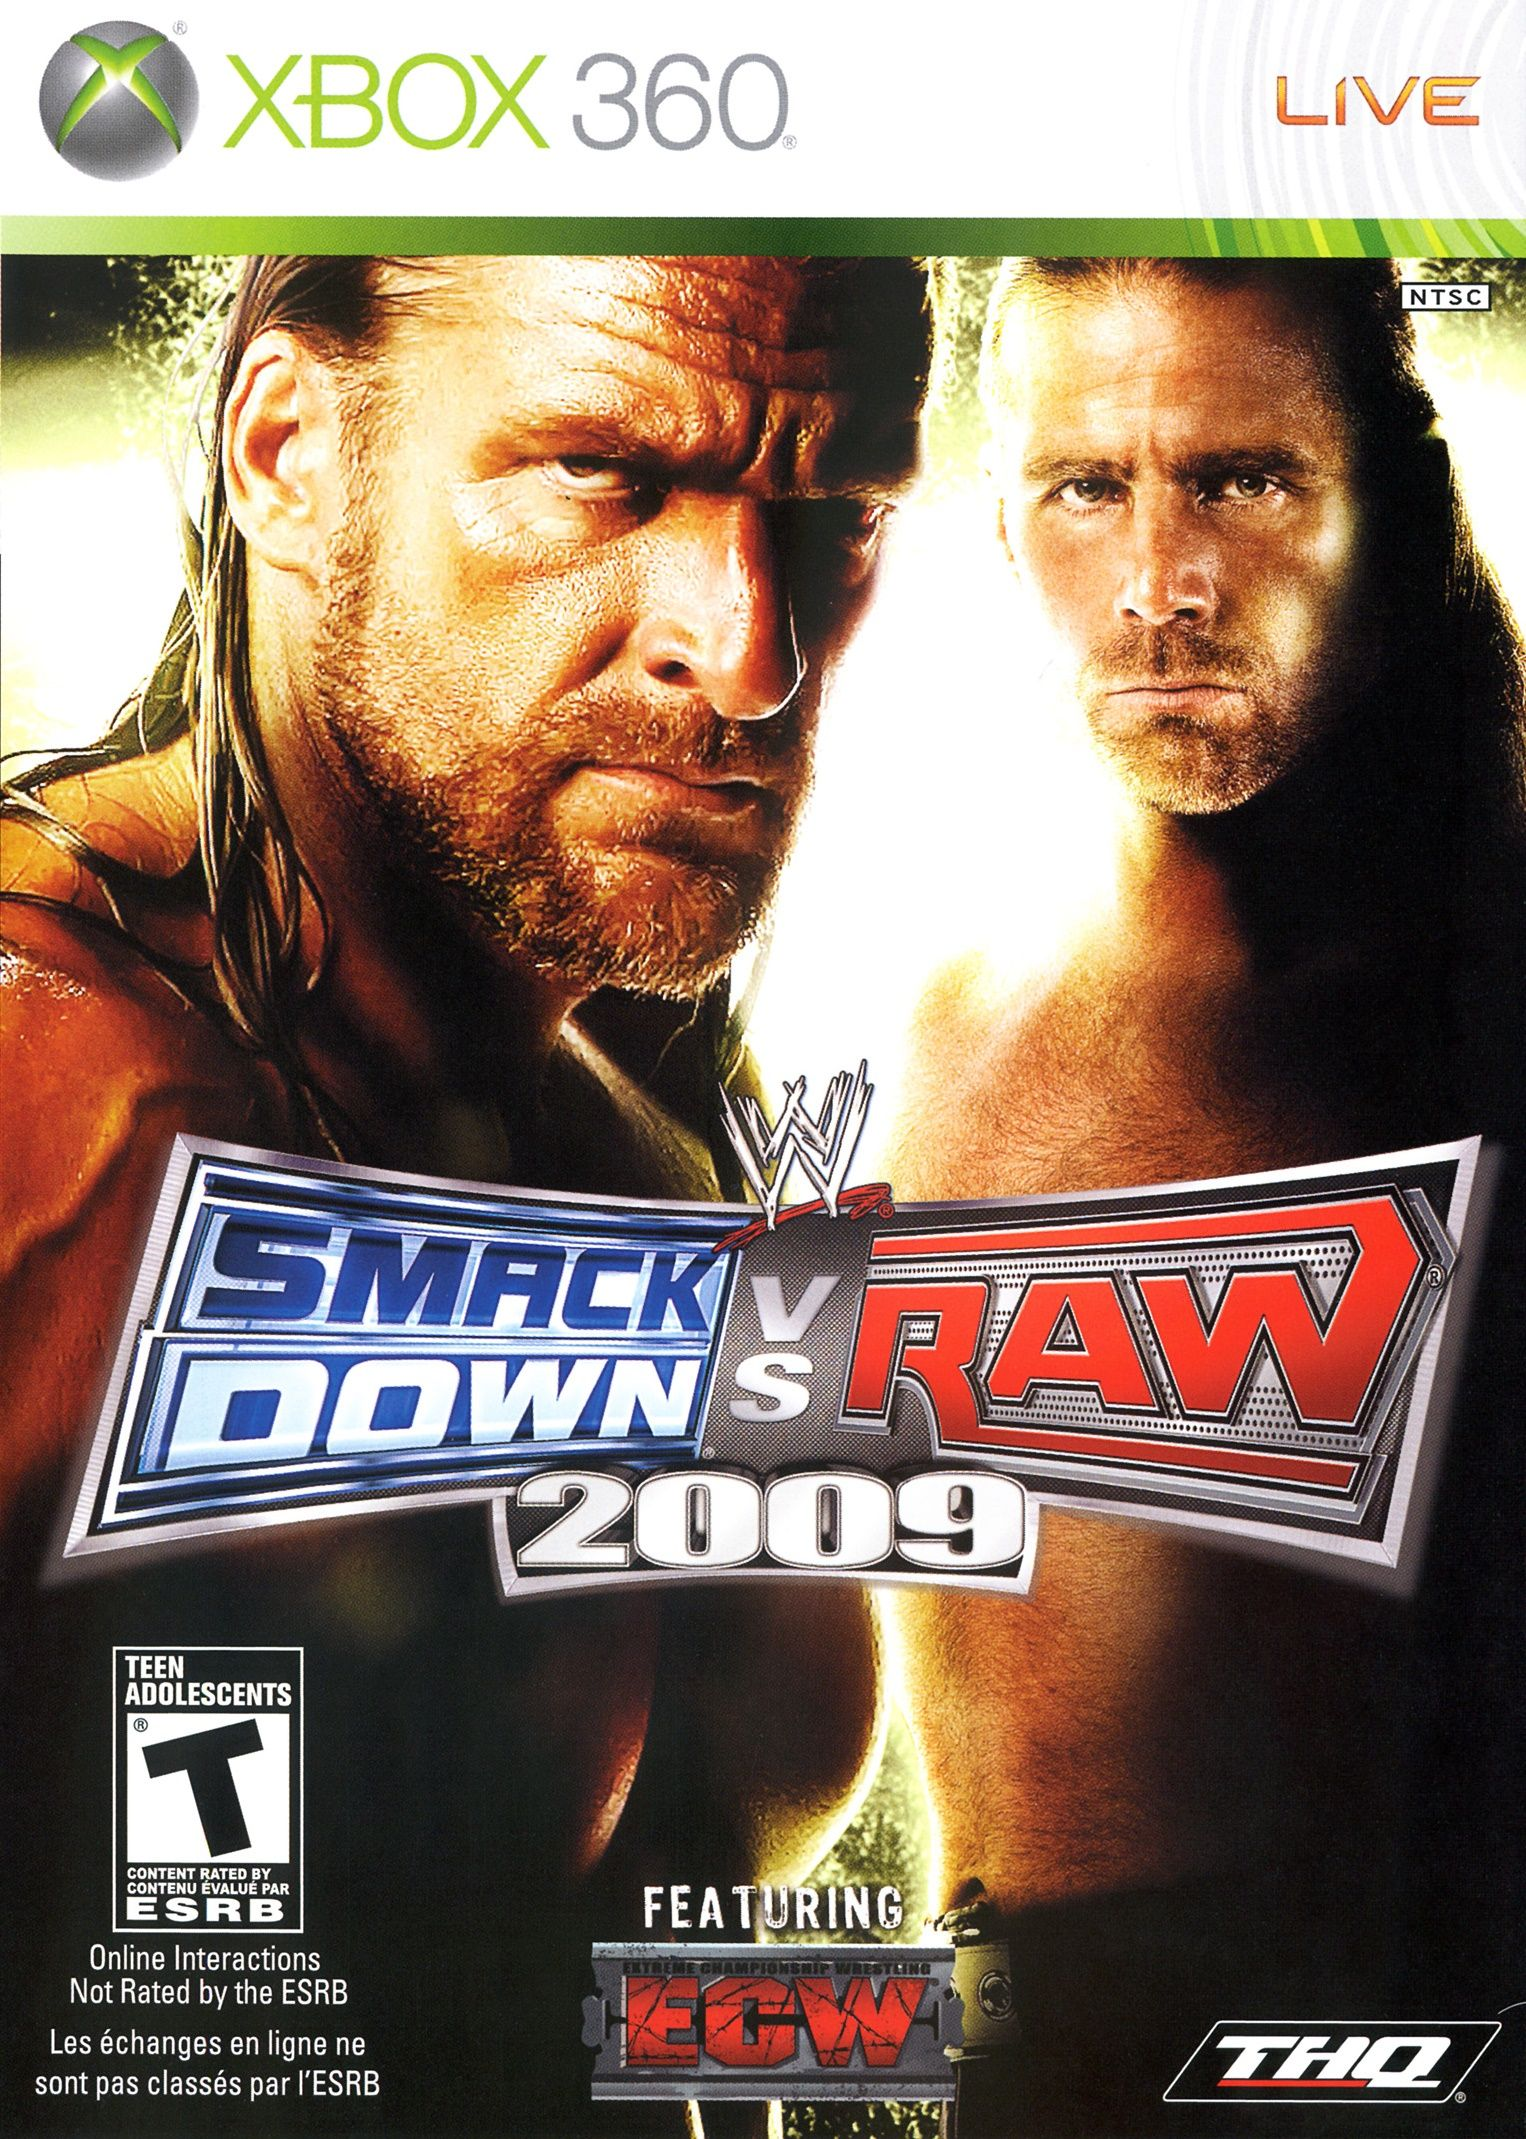 Pin by Aaron Viles on Xbox (With images) Wwe game, Wii